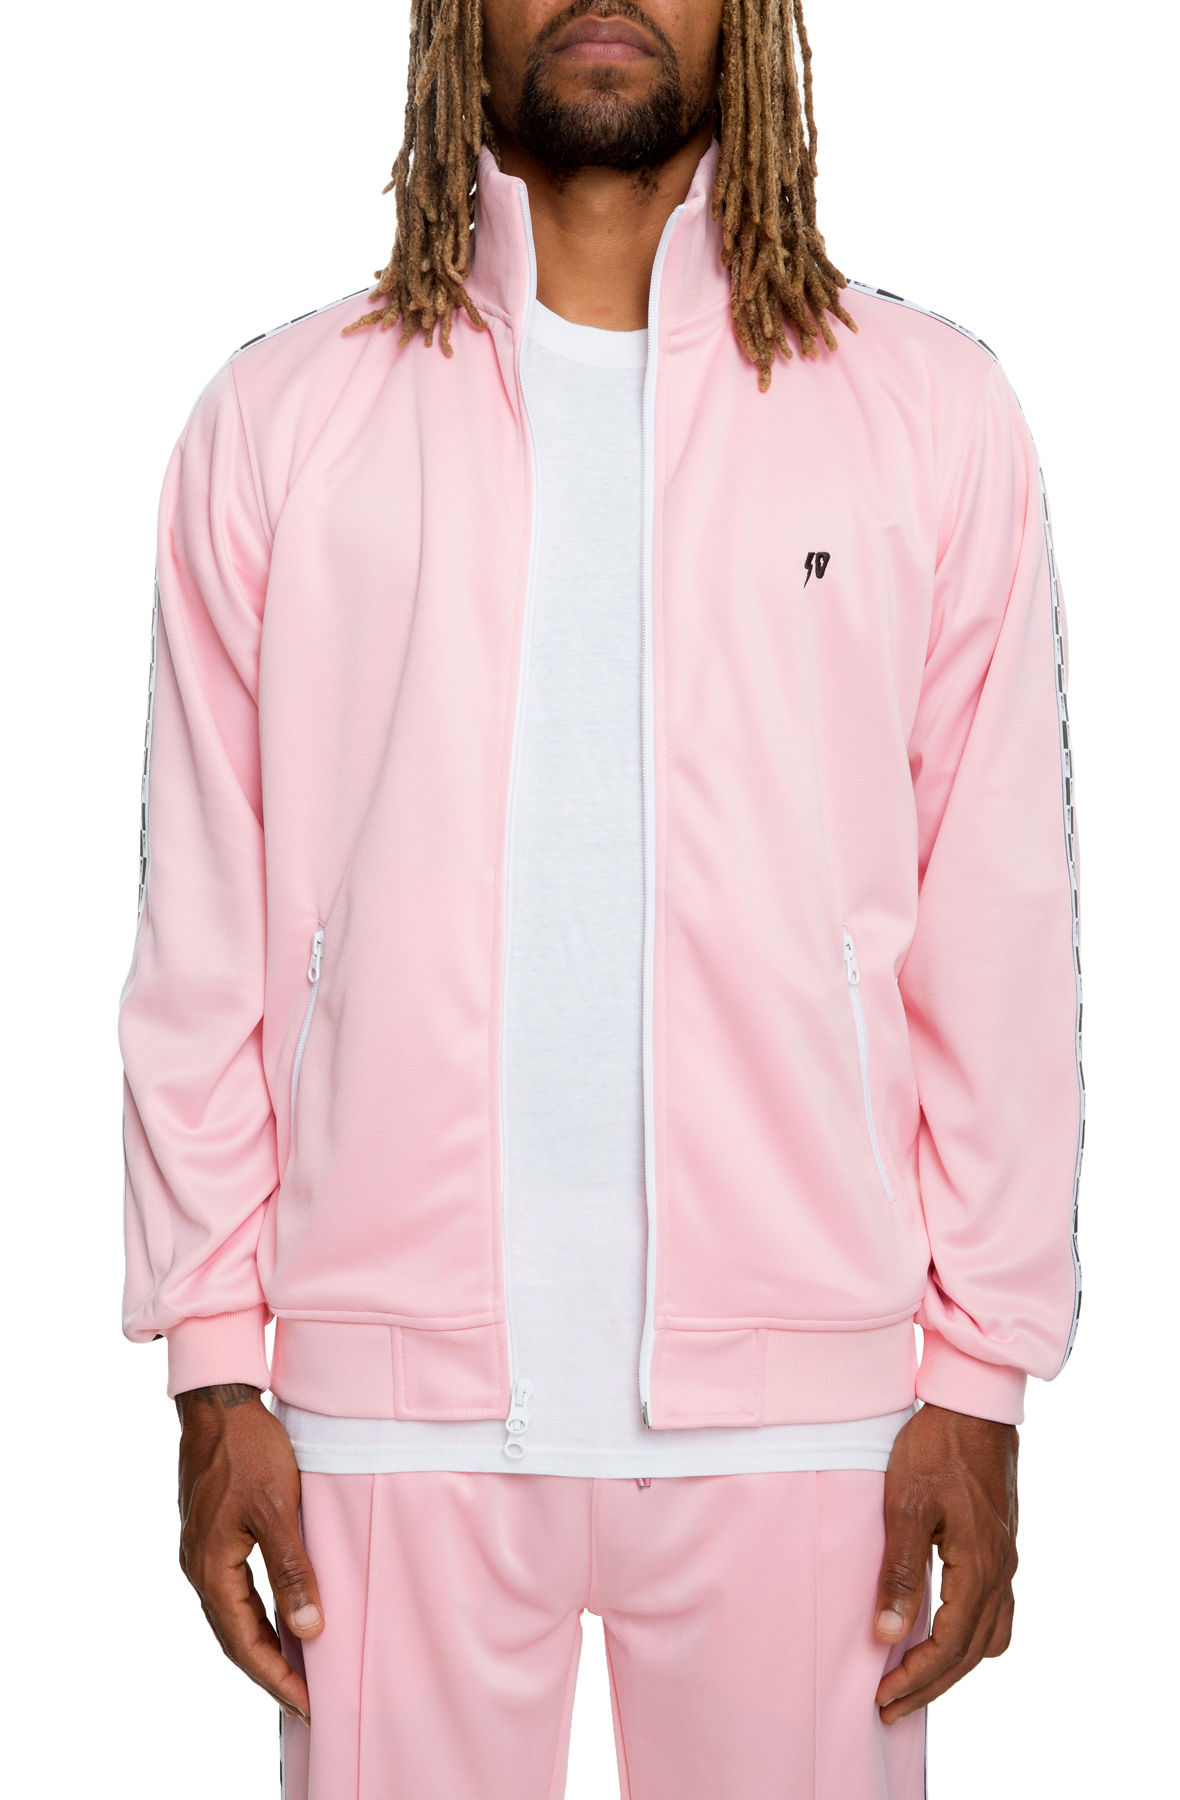 10 Deep XXX USA Checkered Flag Track Jacket in Pink